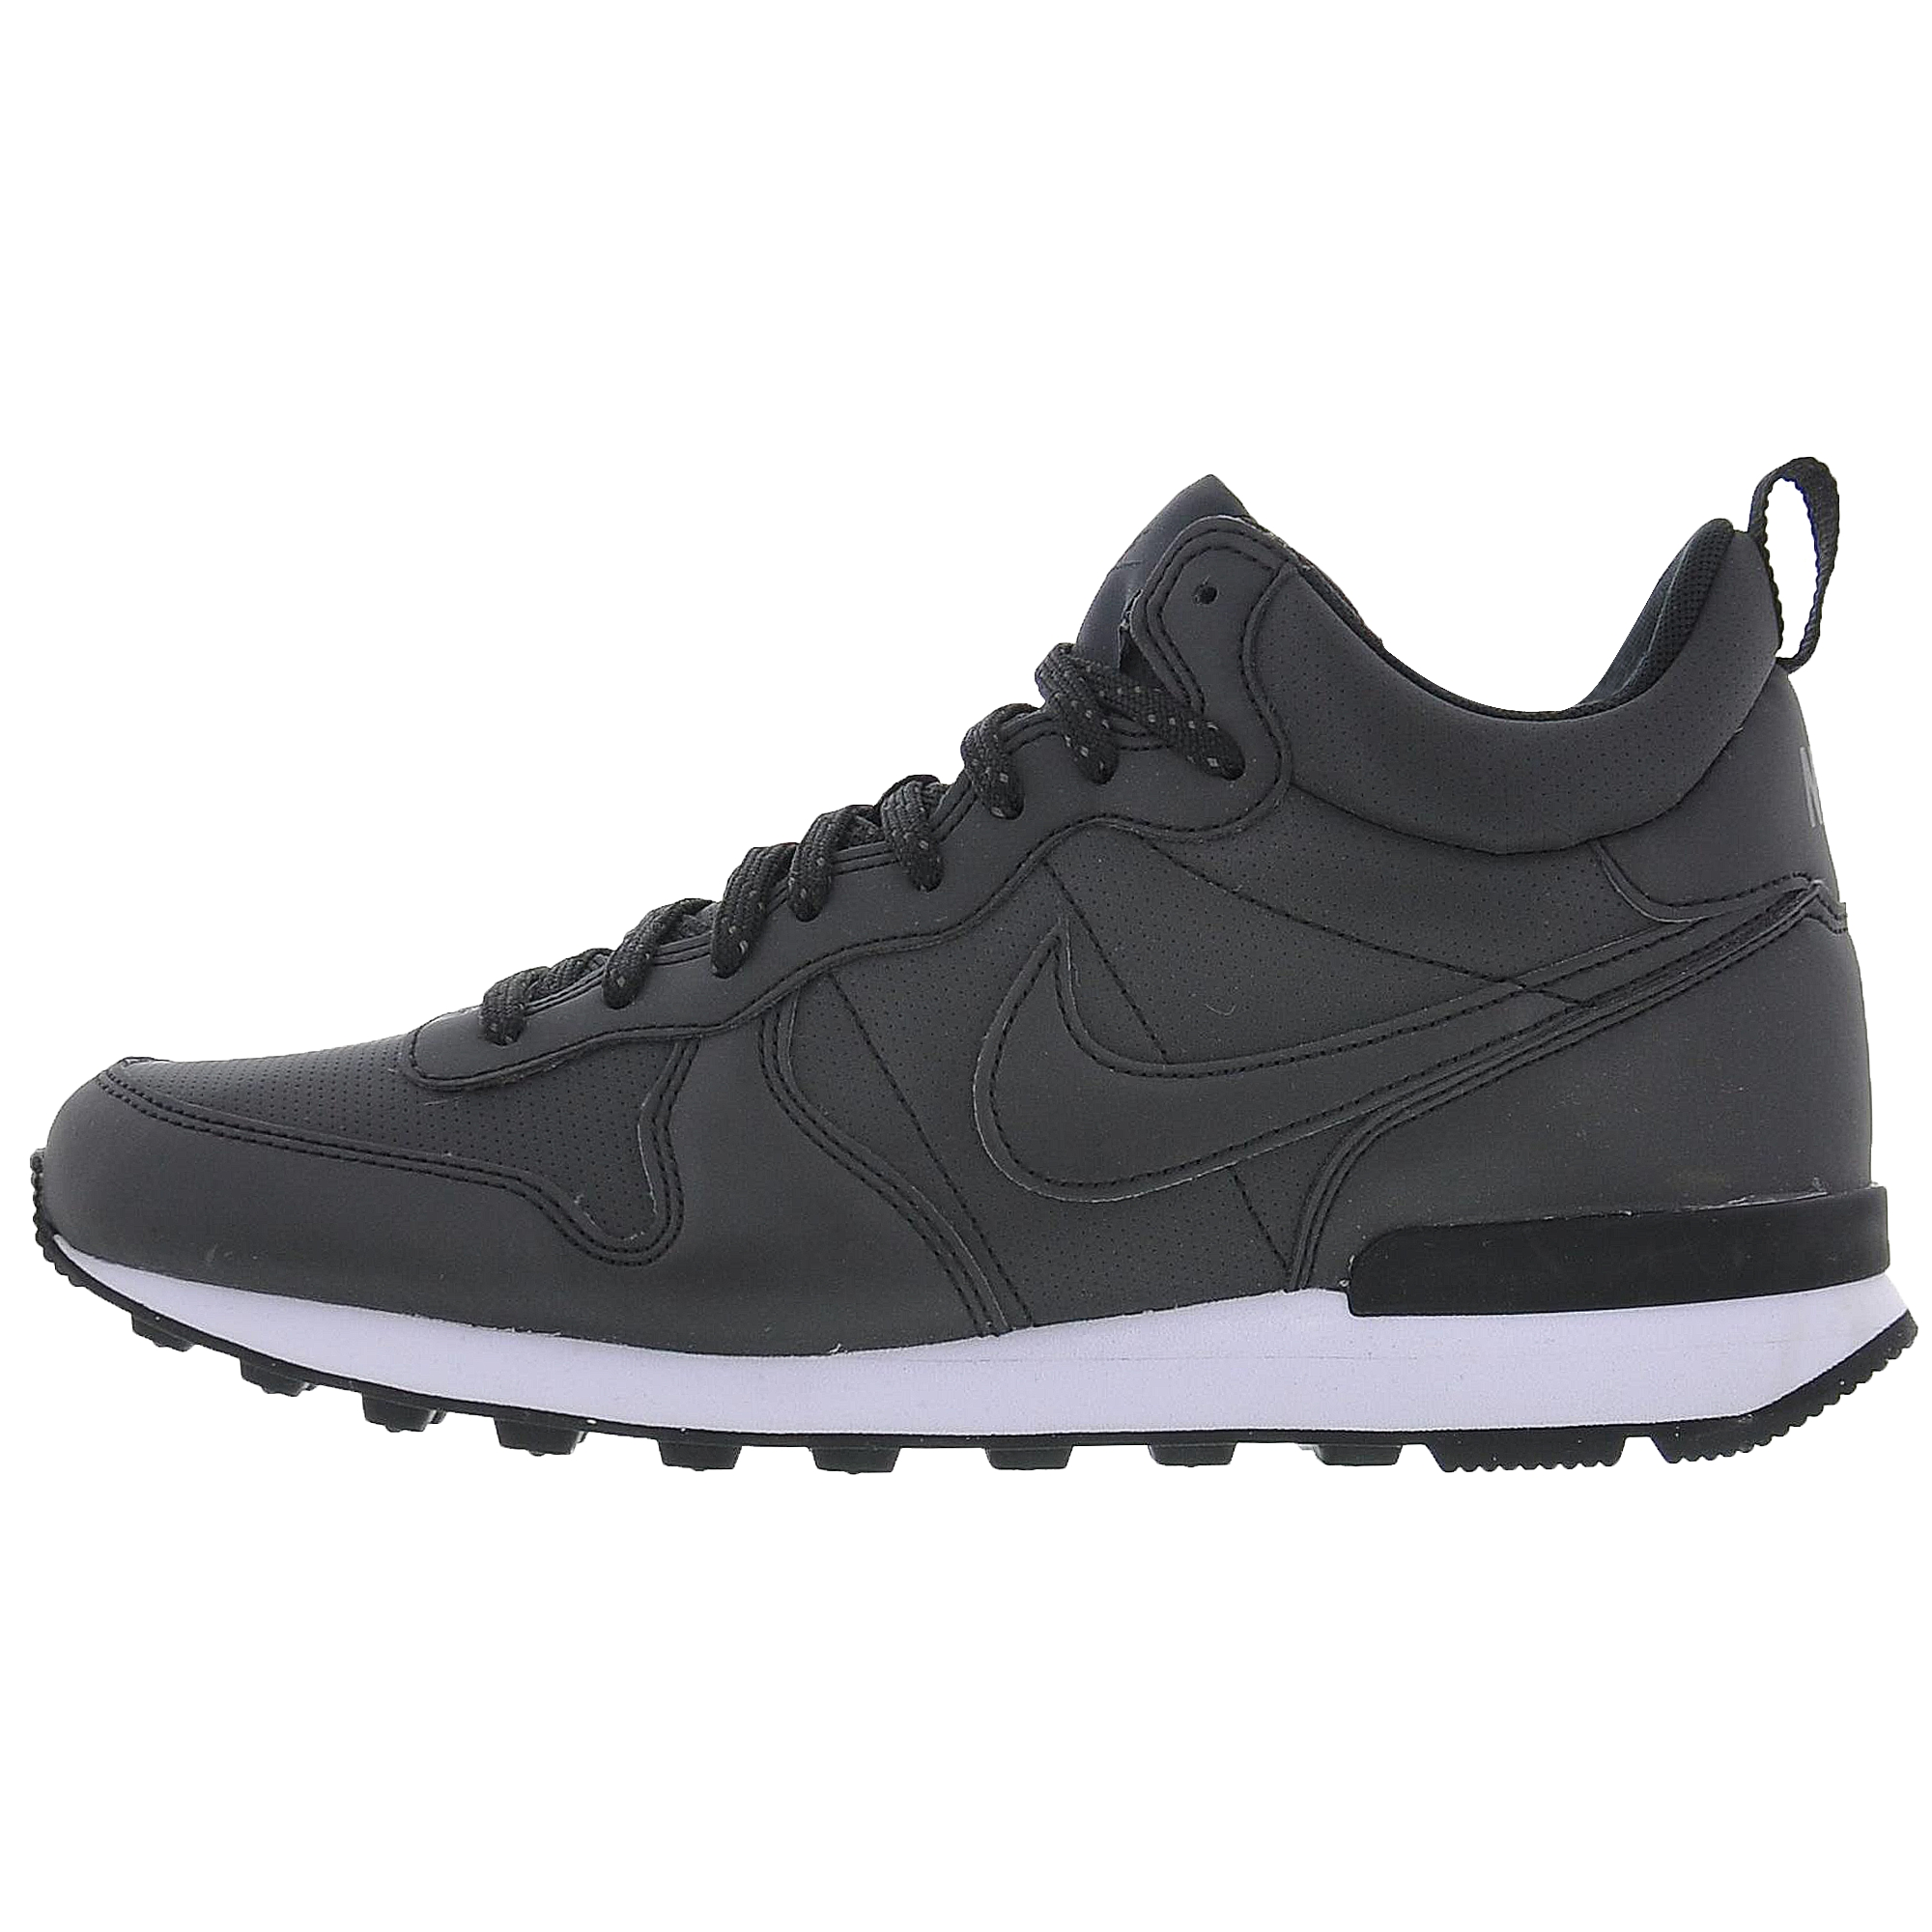 big sale 090b6 5eed7 Nike Internationalist Mid Prm Spor Ayakkabı